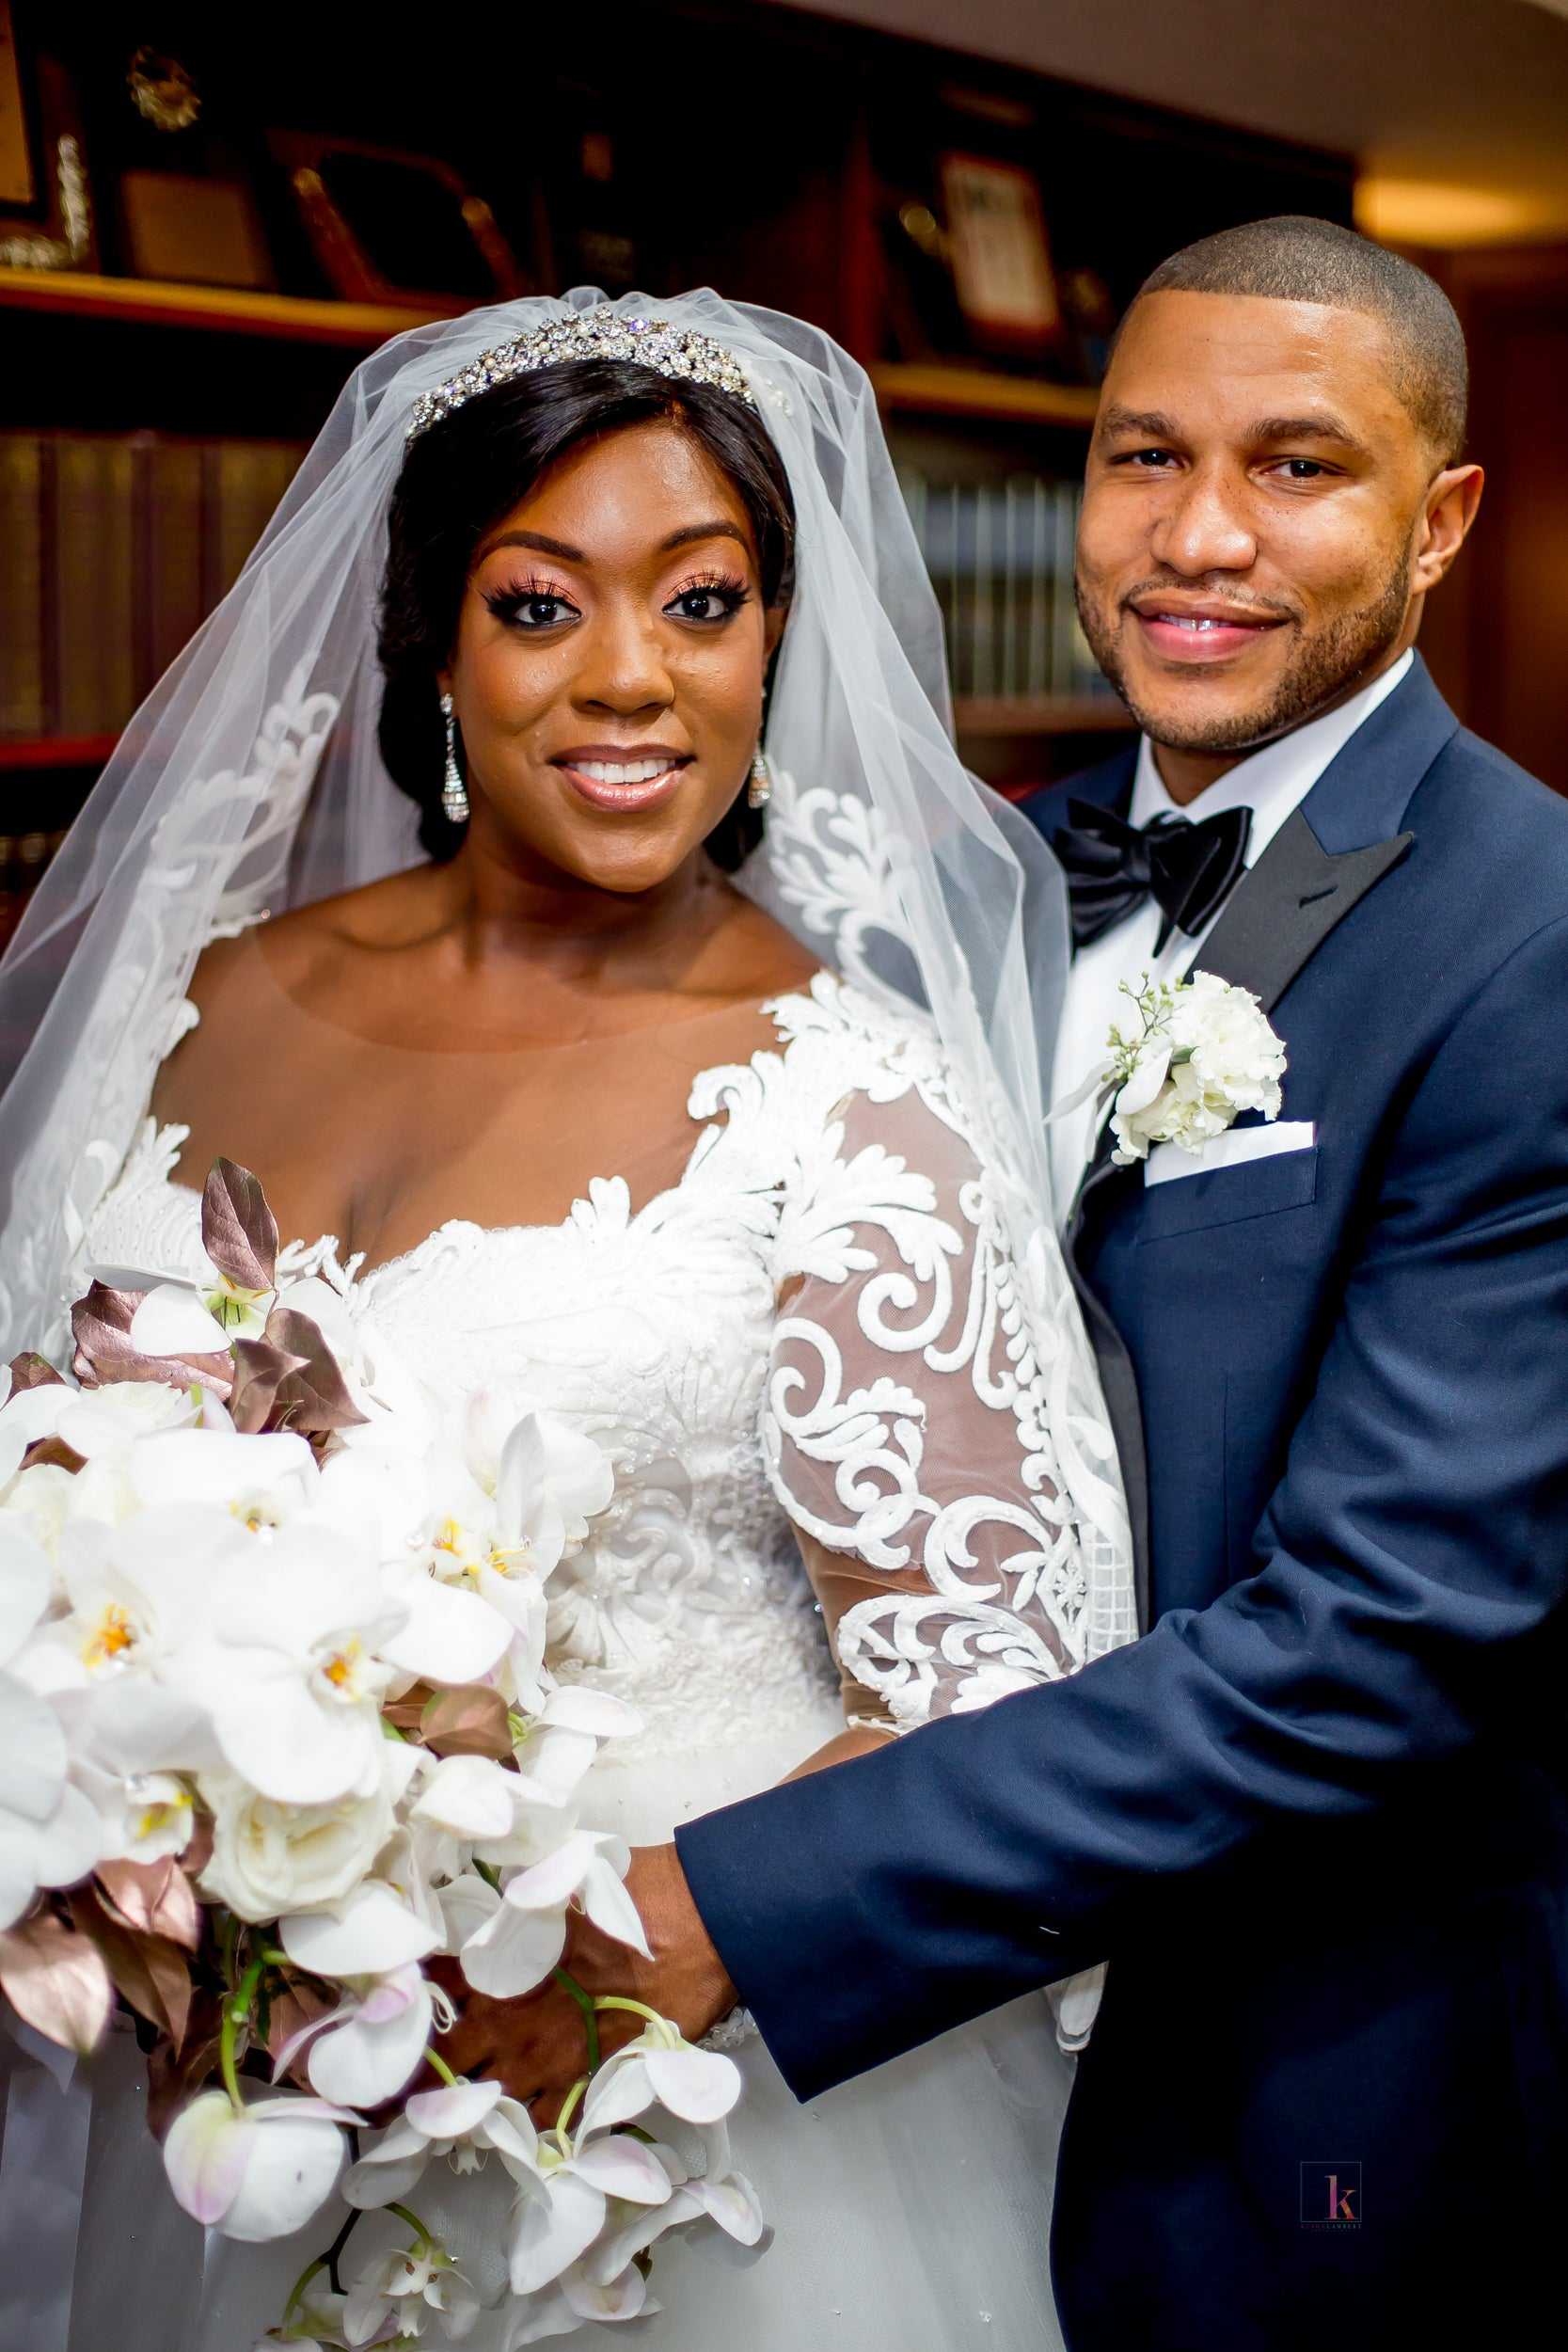 Al Sharpton S Daughter Married The Man Of Her Dreams In A Public And Love Filled Ceremony